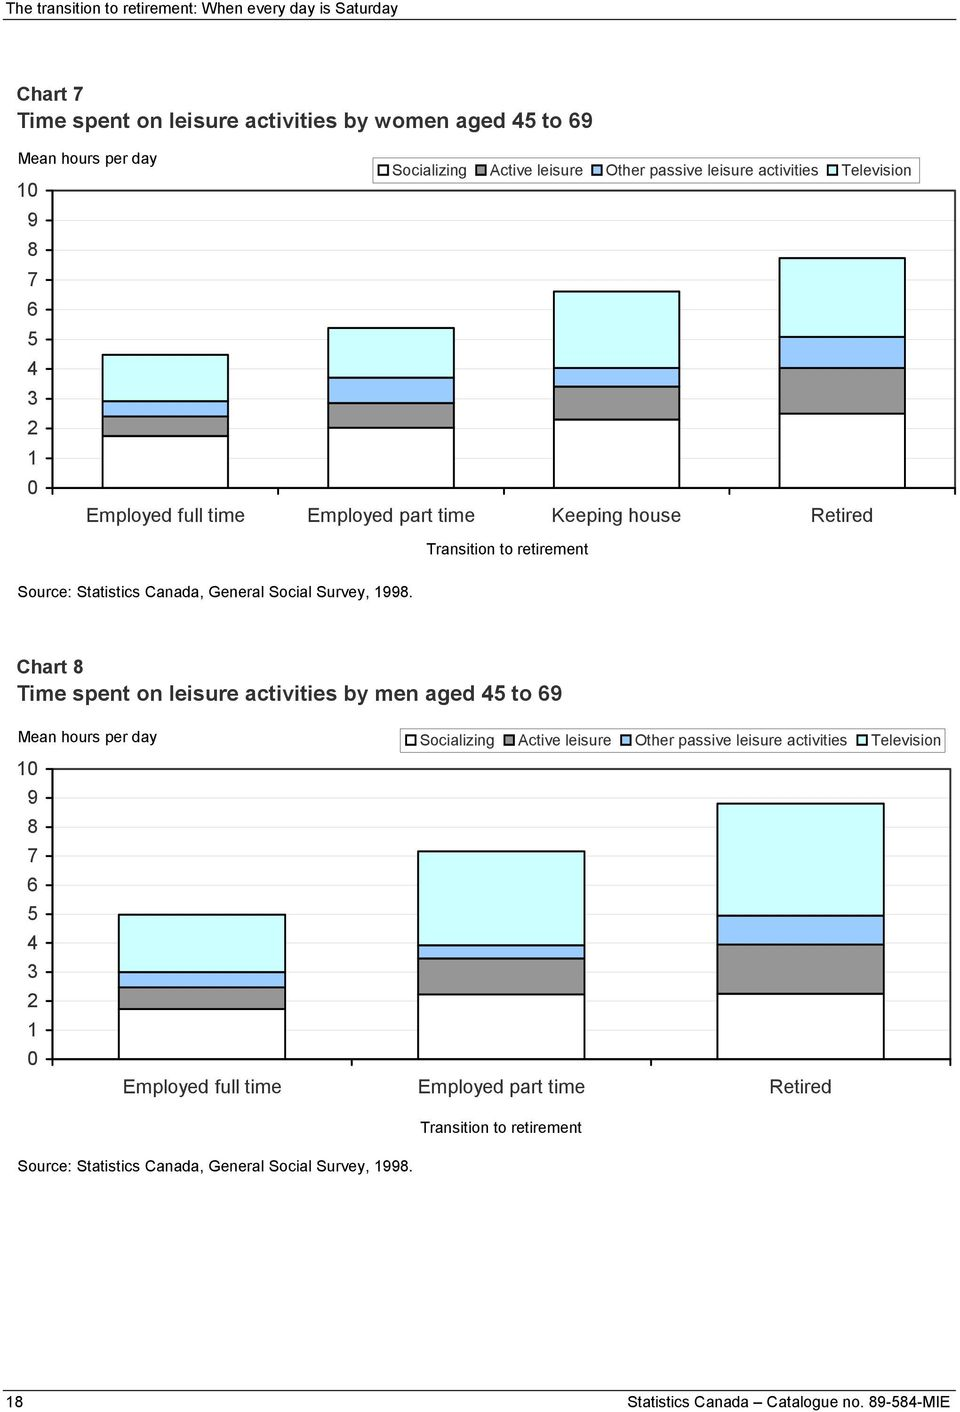 spent on leisure activities by men aged 45 to 69 Mean hours per day 1 9 8 7 6 5 4 3 2 1 Socializing Active leisure Other passive leisure